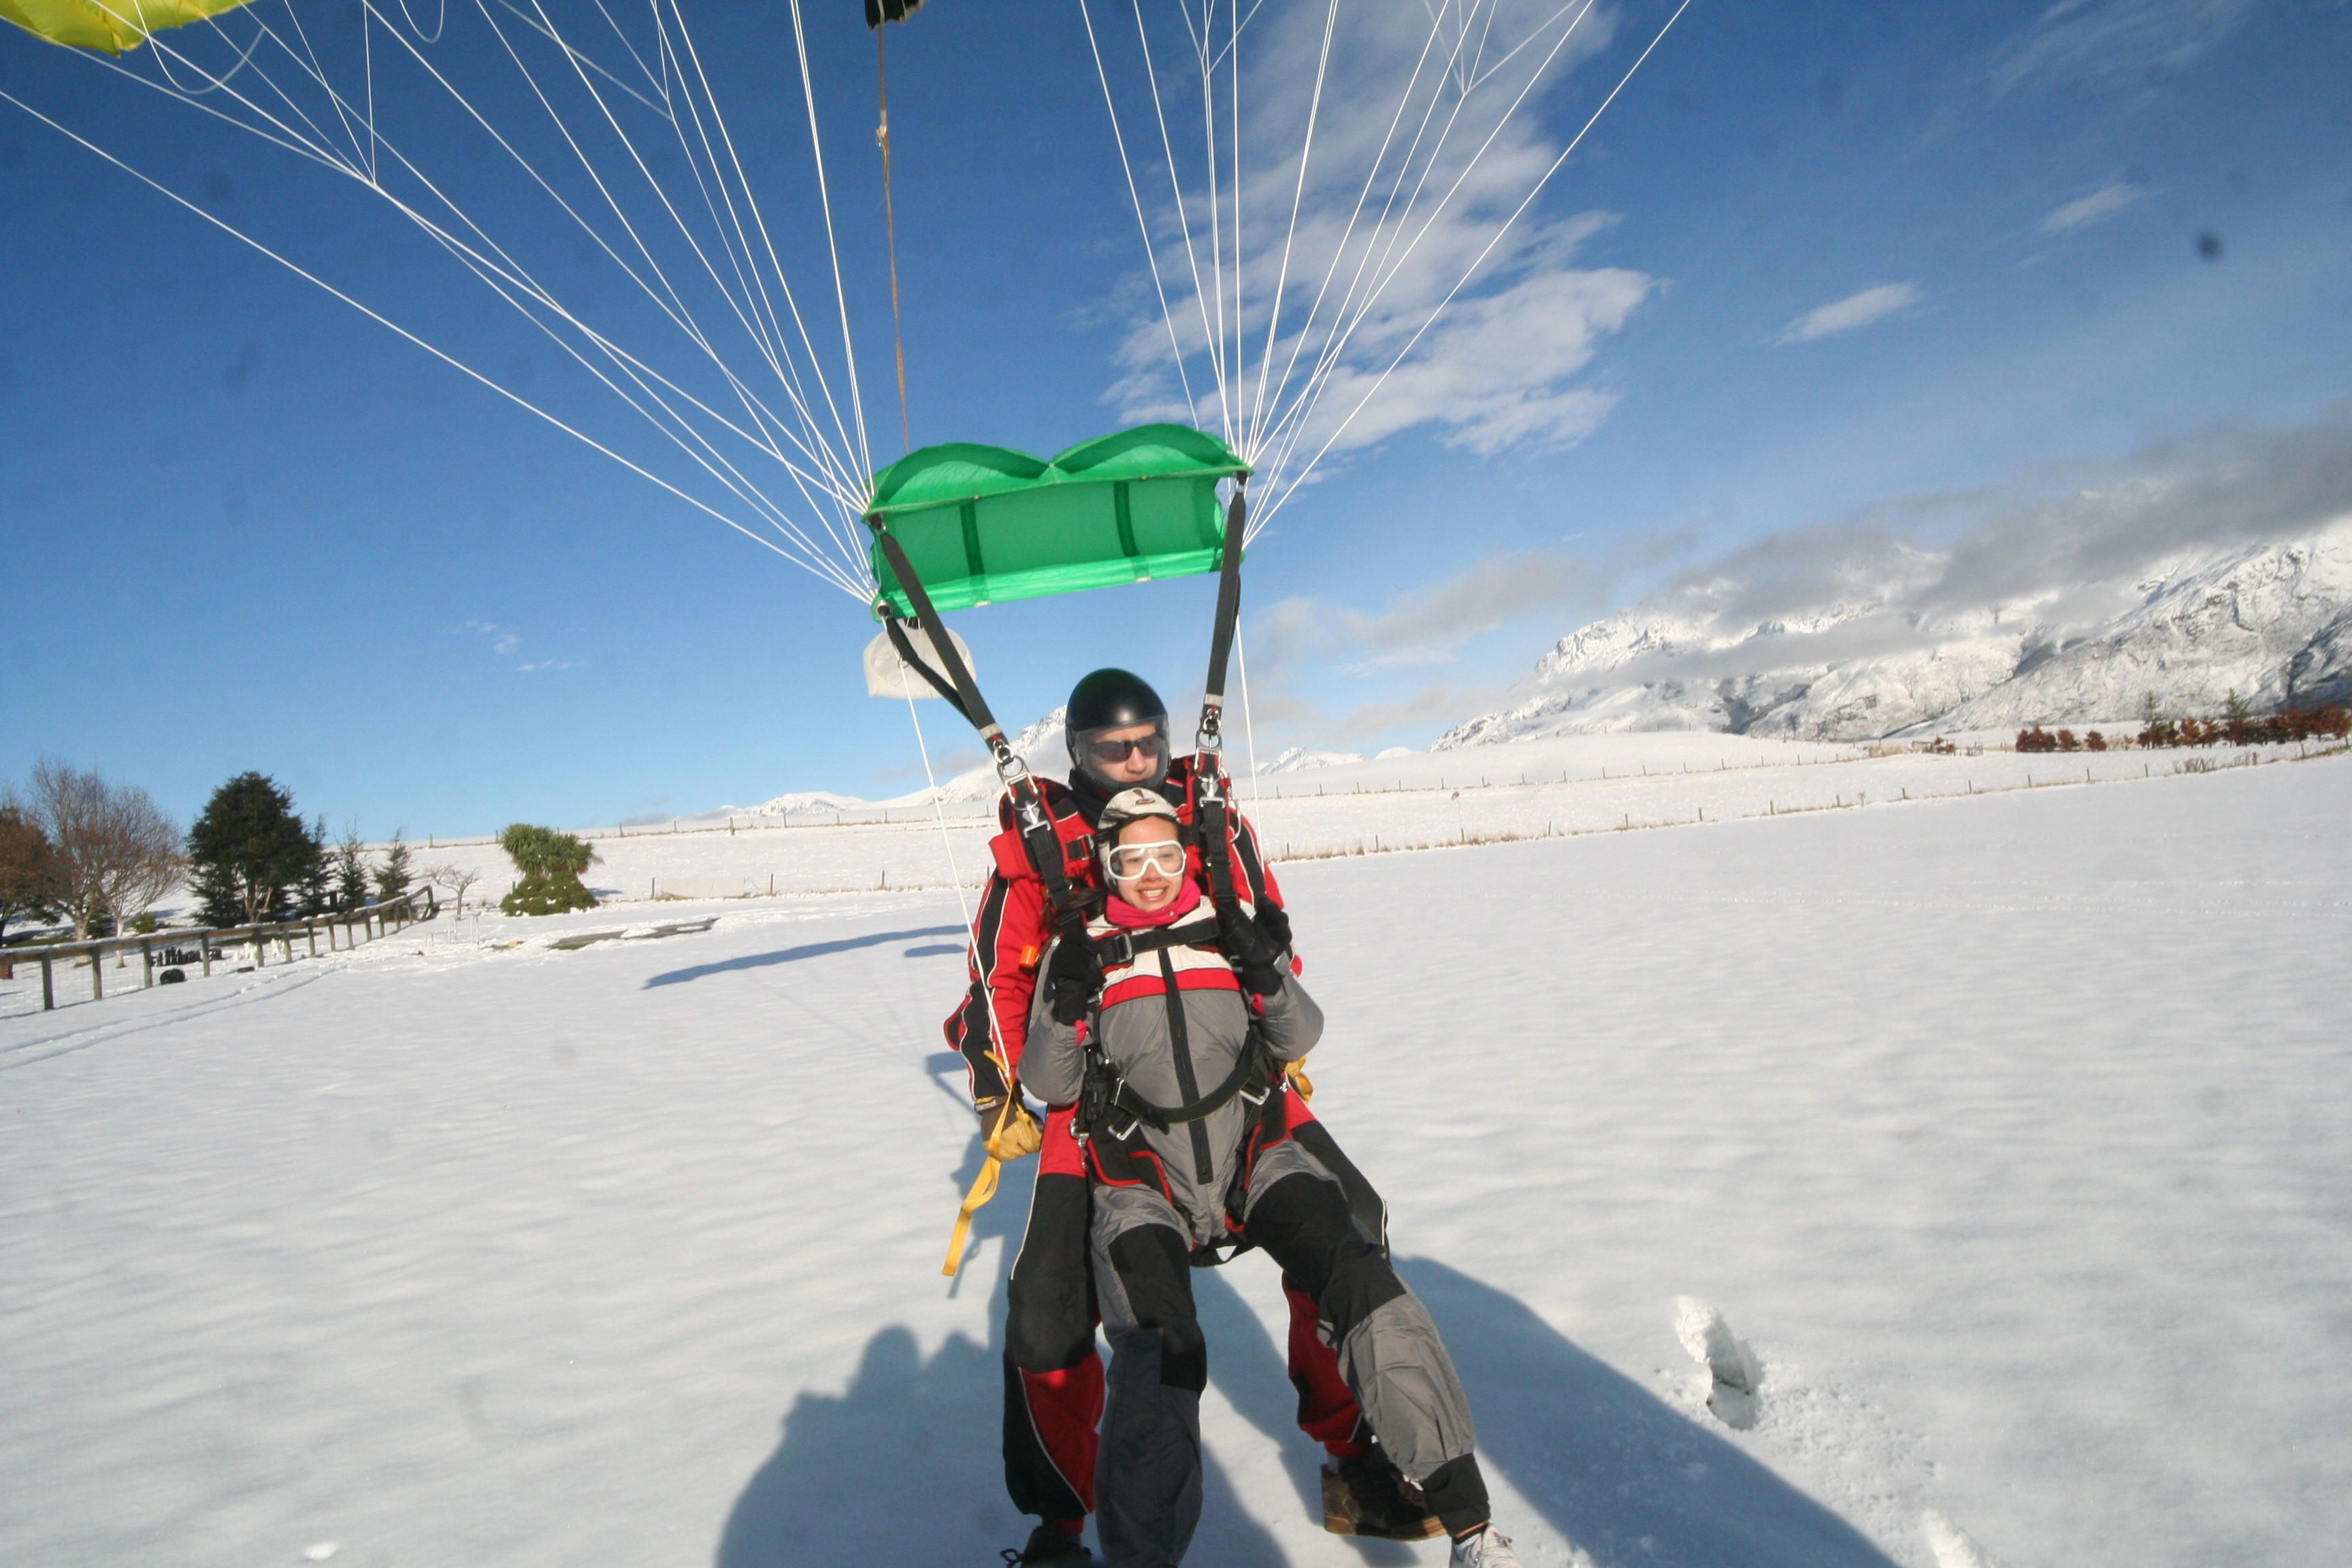 Huang From Taiwan Landing Her Skydive With Nick Photo By Ricky 27th May 2014 Paragliding Skydiving Queenstown